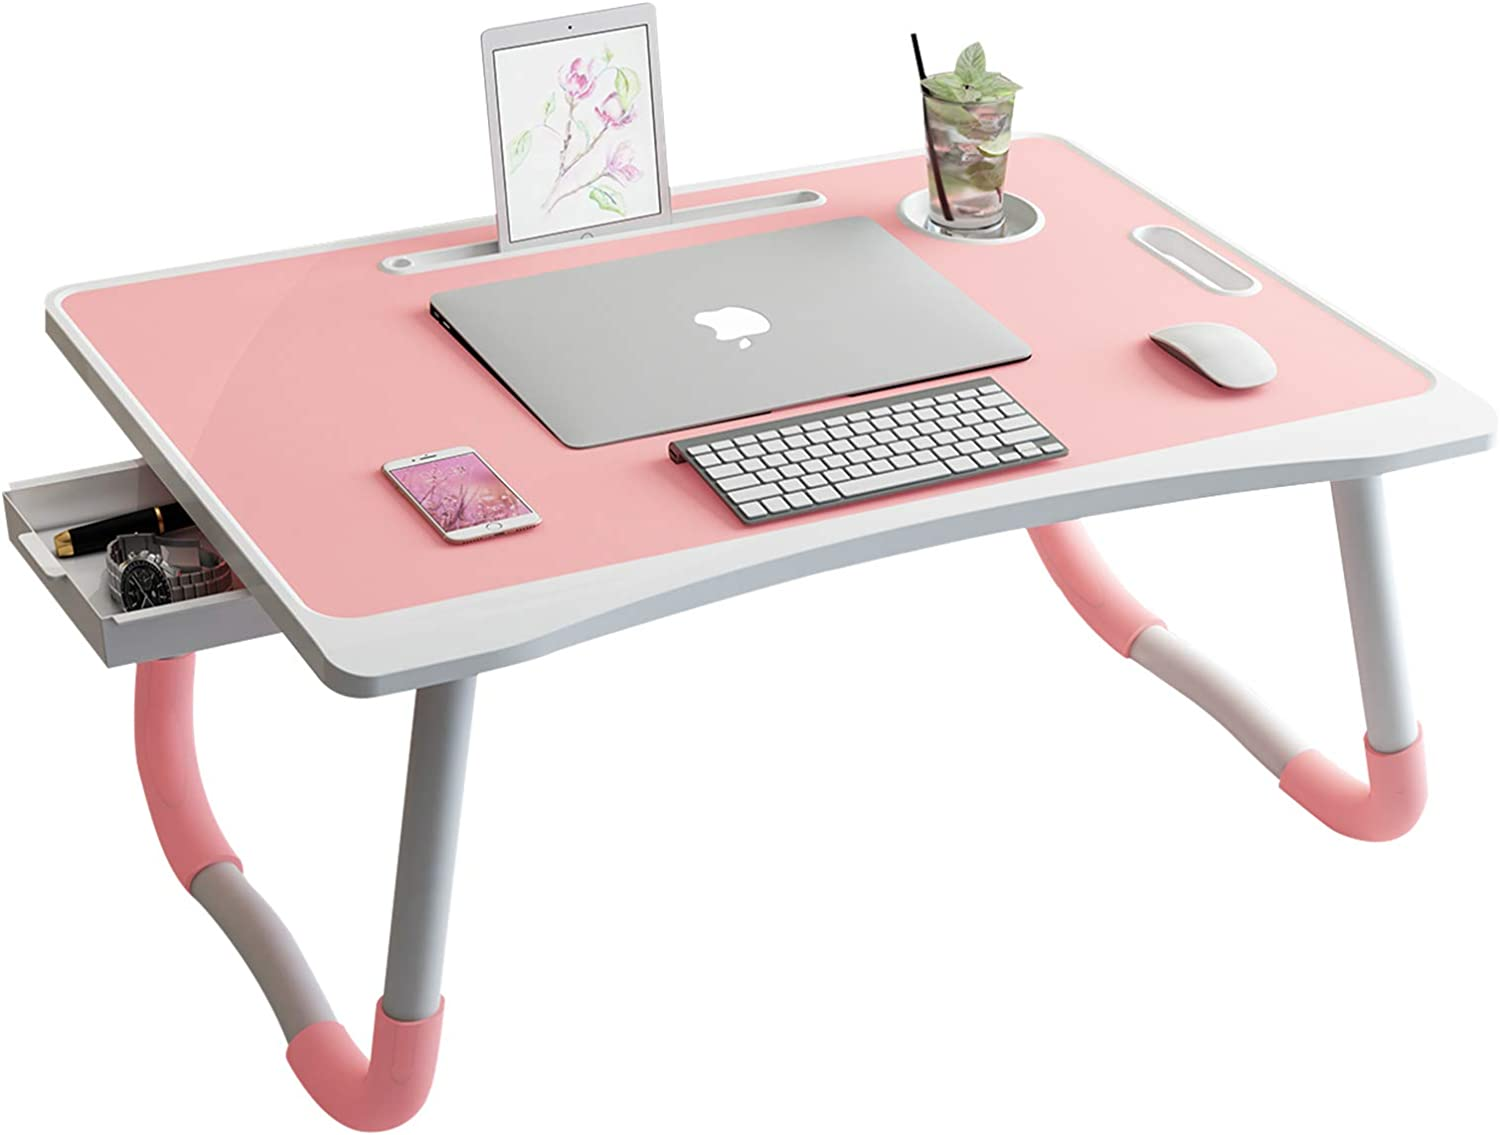 Home Laptop Desk with Storage Drawer, Foldable Lap Desk Bed Table Tray with Cup Holder and Tablet Slots for Bed Couch Sofa Working Desk (Pink)